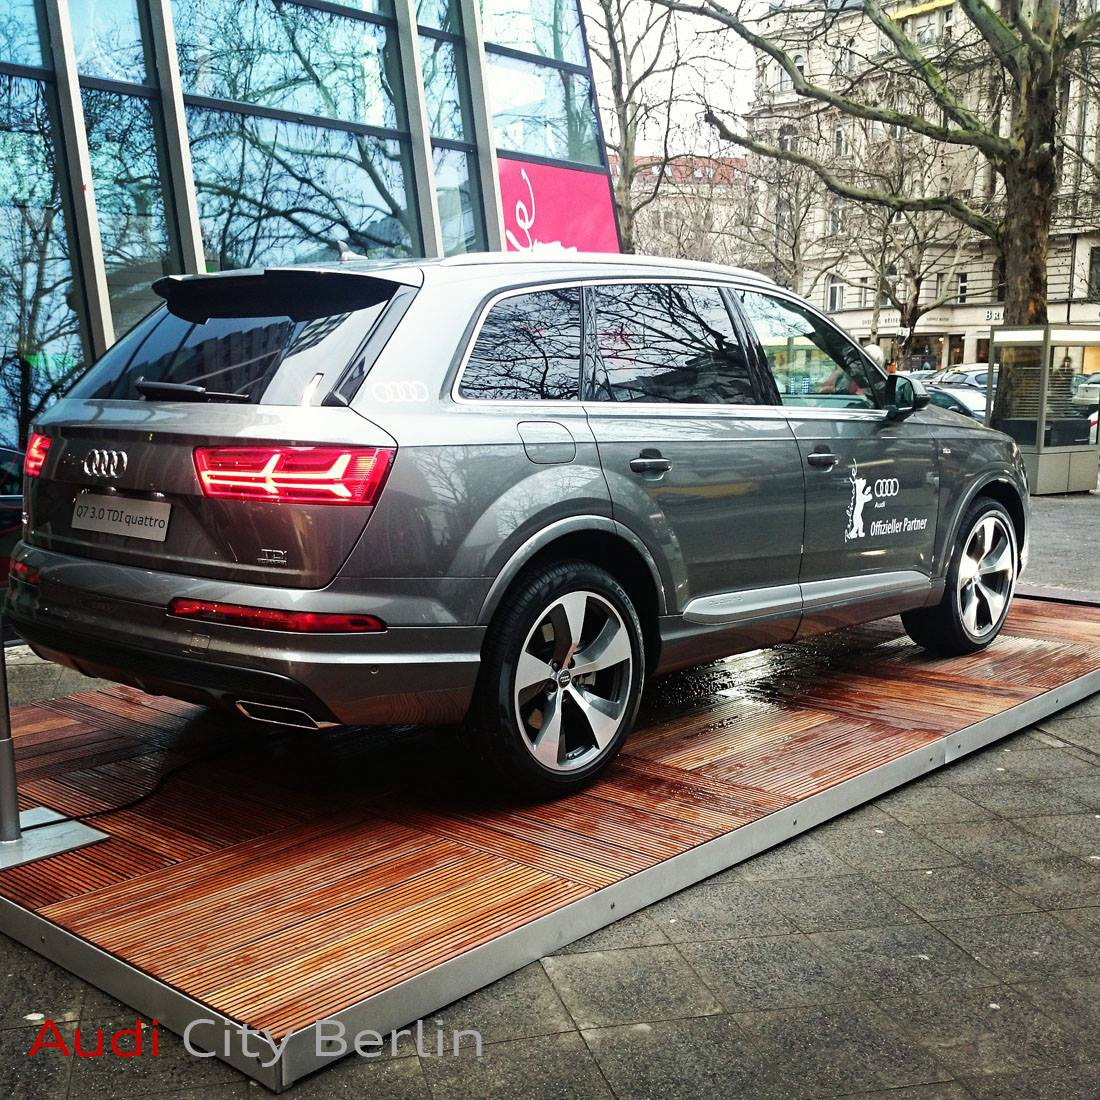 2015 Audi Q7 Photoshoped into Existence, Shows Next Chapter of Audi Design - autoevolution